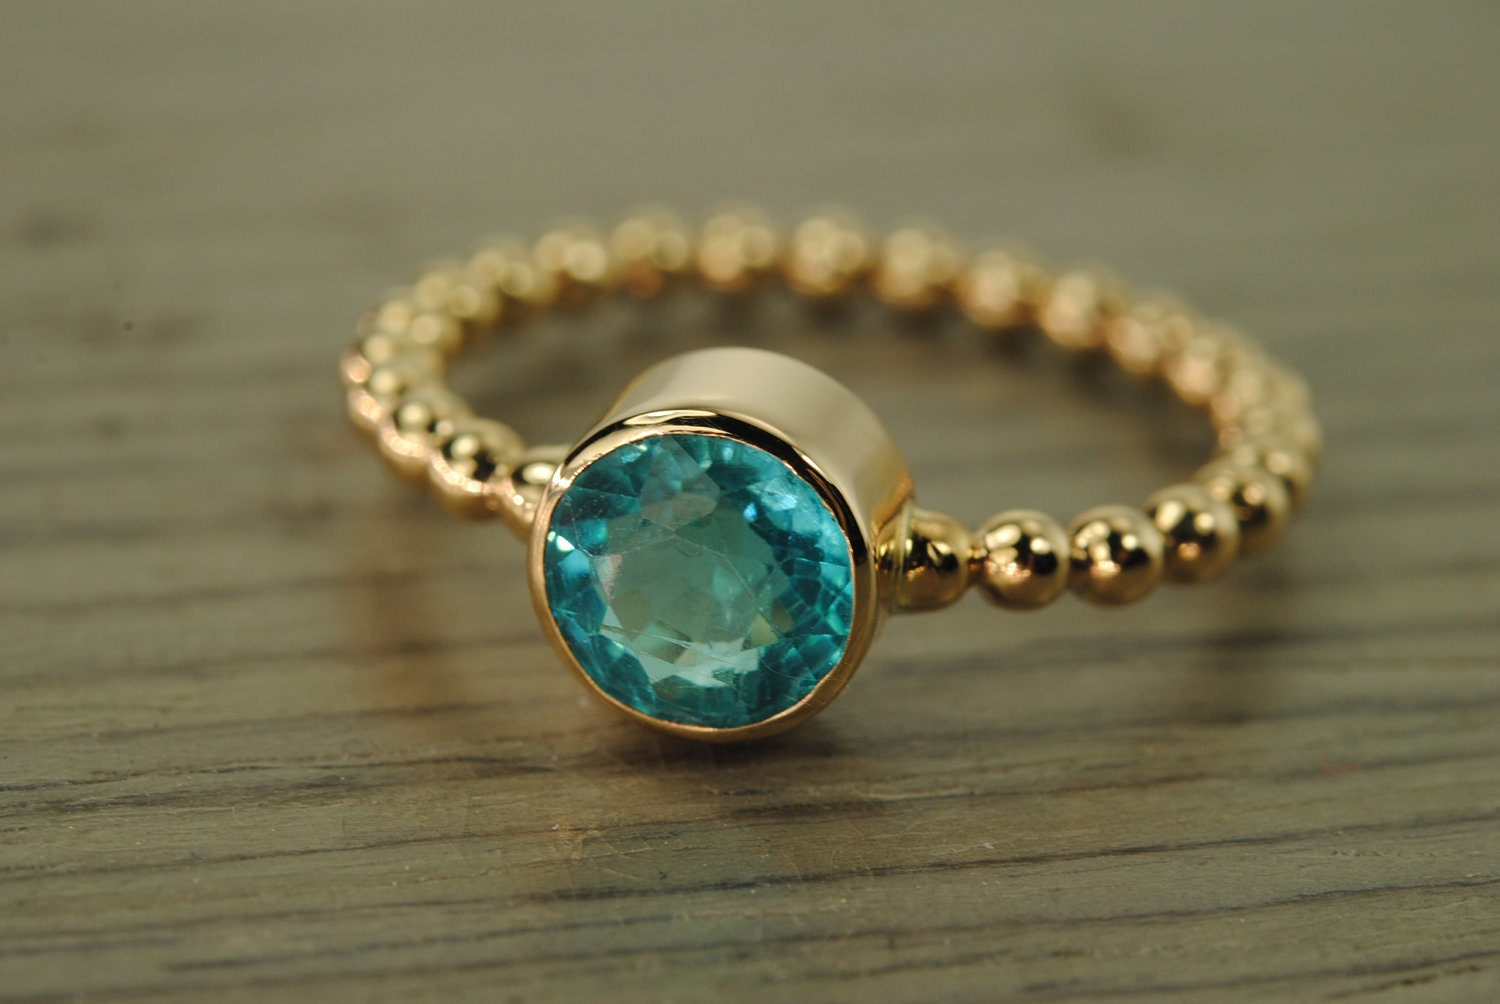 Carmine Ring Teal Apatite Solid 14k Yellow Gold Stacking Ring